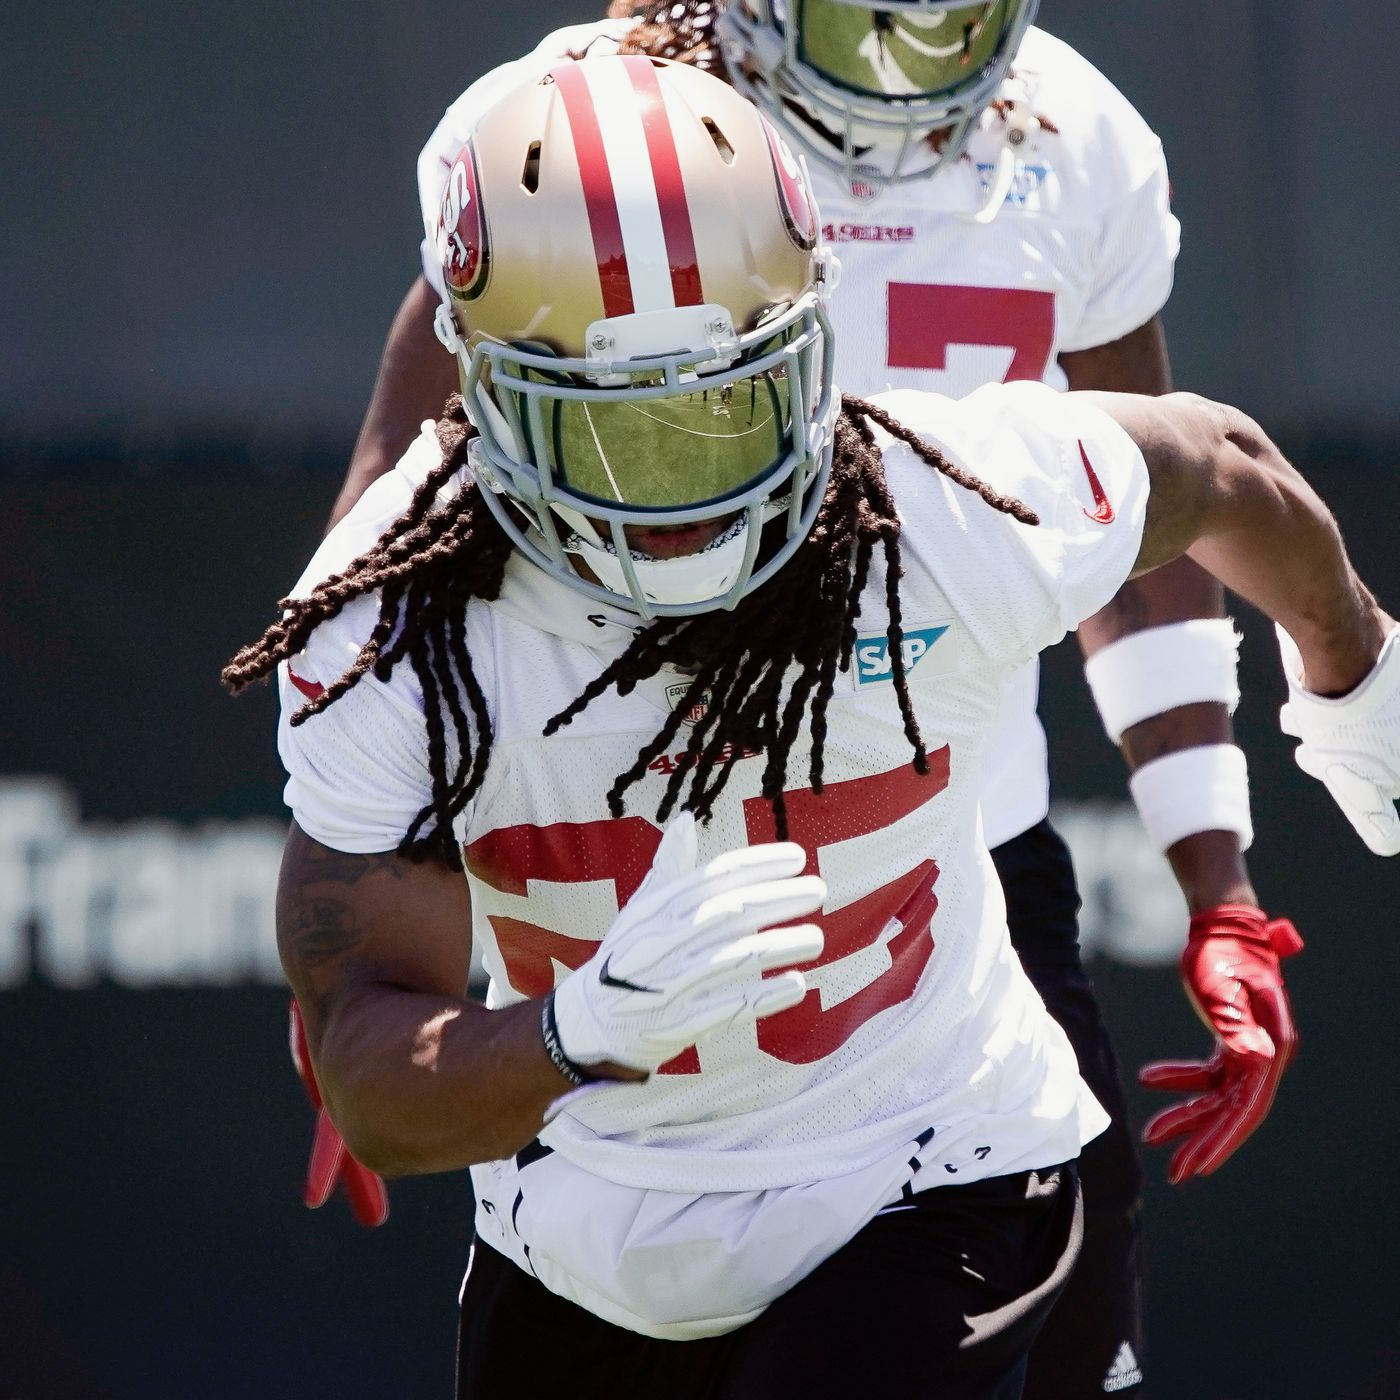 sale retailer 5811f a6771 49ers new: Richard Sherman gives an update on his progress ...